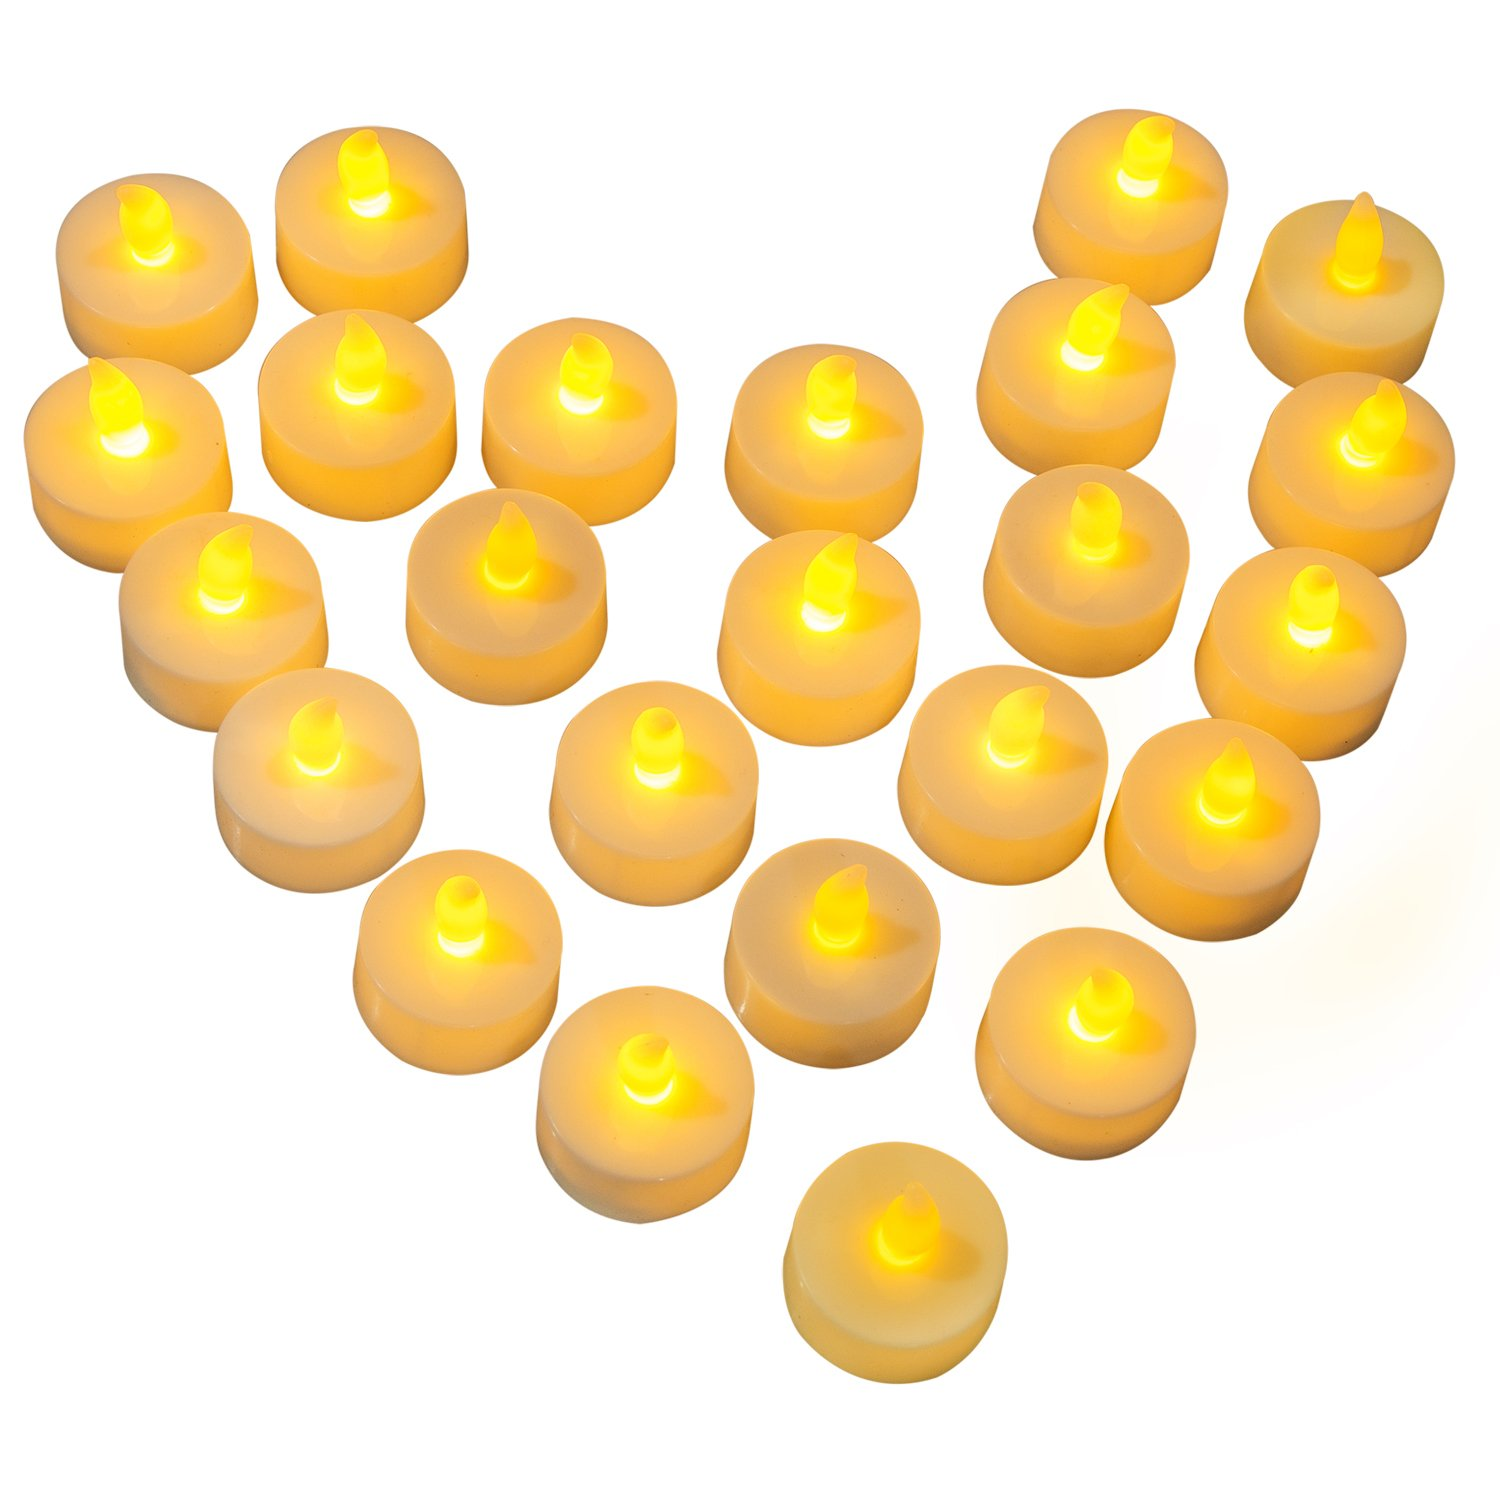 Diyife Flameless LED Tea Lights, [24pcs Battery Operated] Flickering LED Candles, Realistic Electric Fake Candle in Warm Yellow - Perfect for Valentines Day, Halloween, Christmas, Birthday Decoration HLT2--Parent2